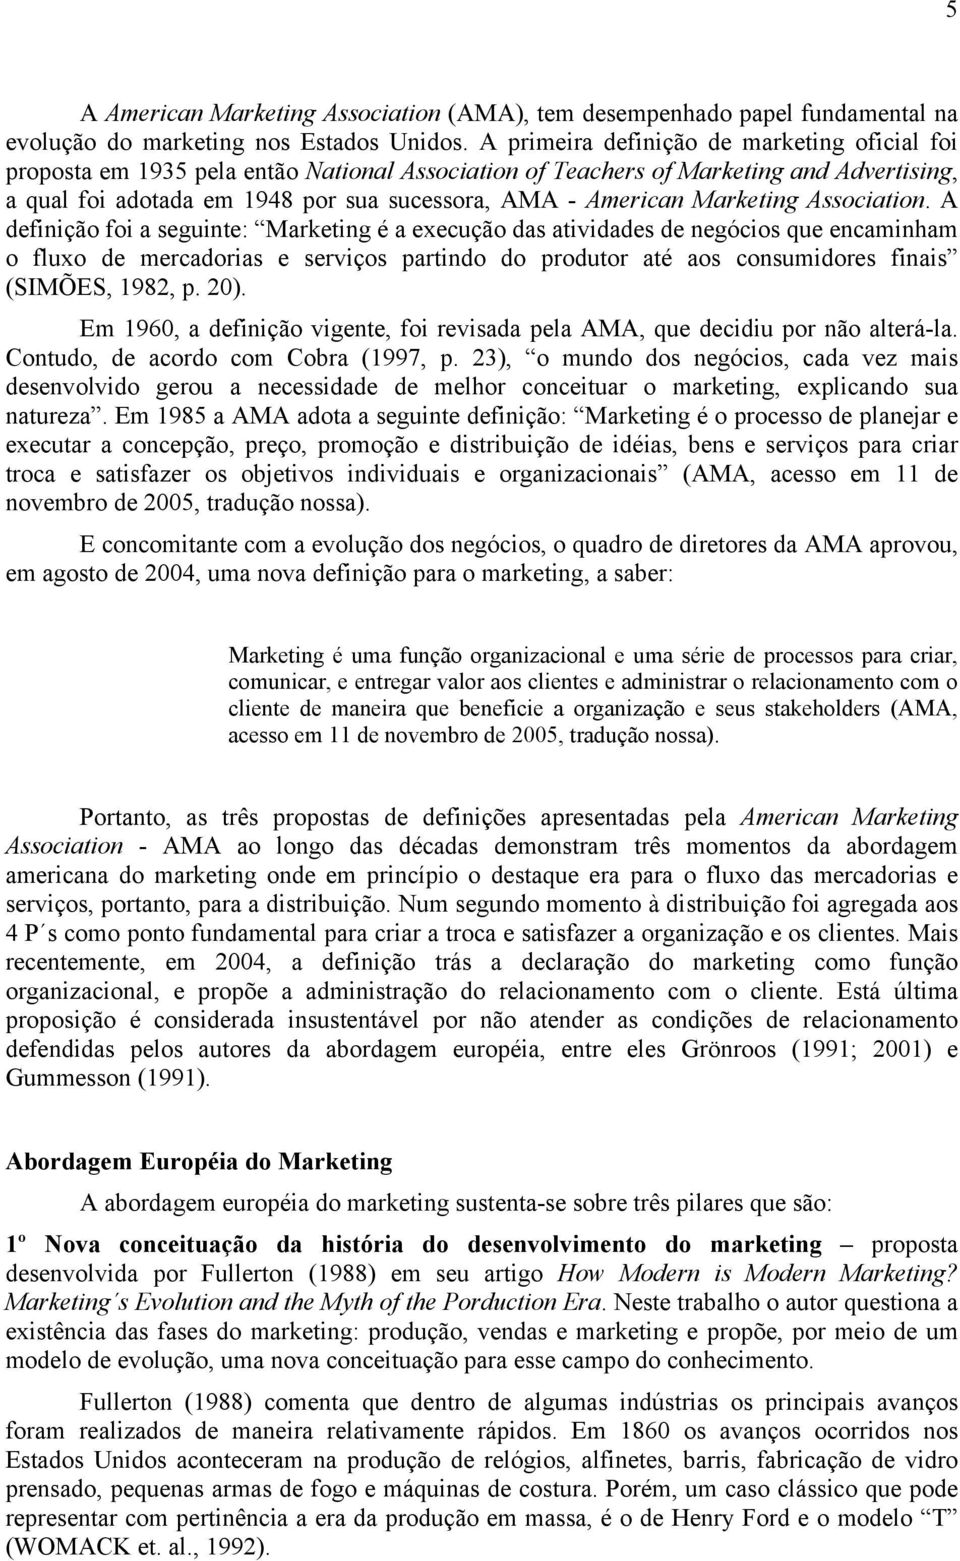 Marketing Association.